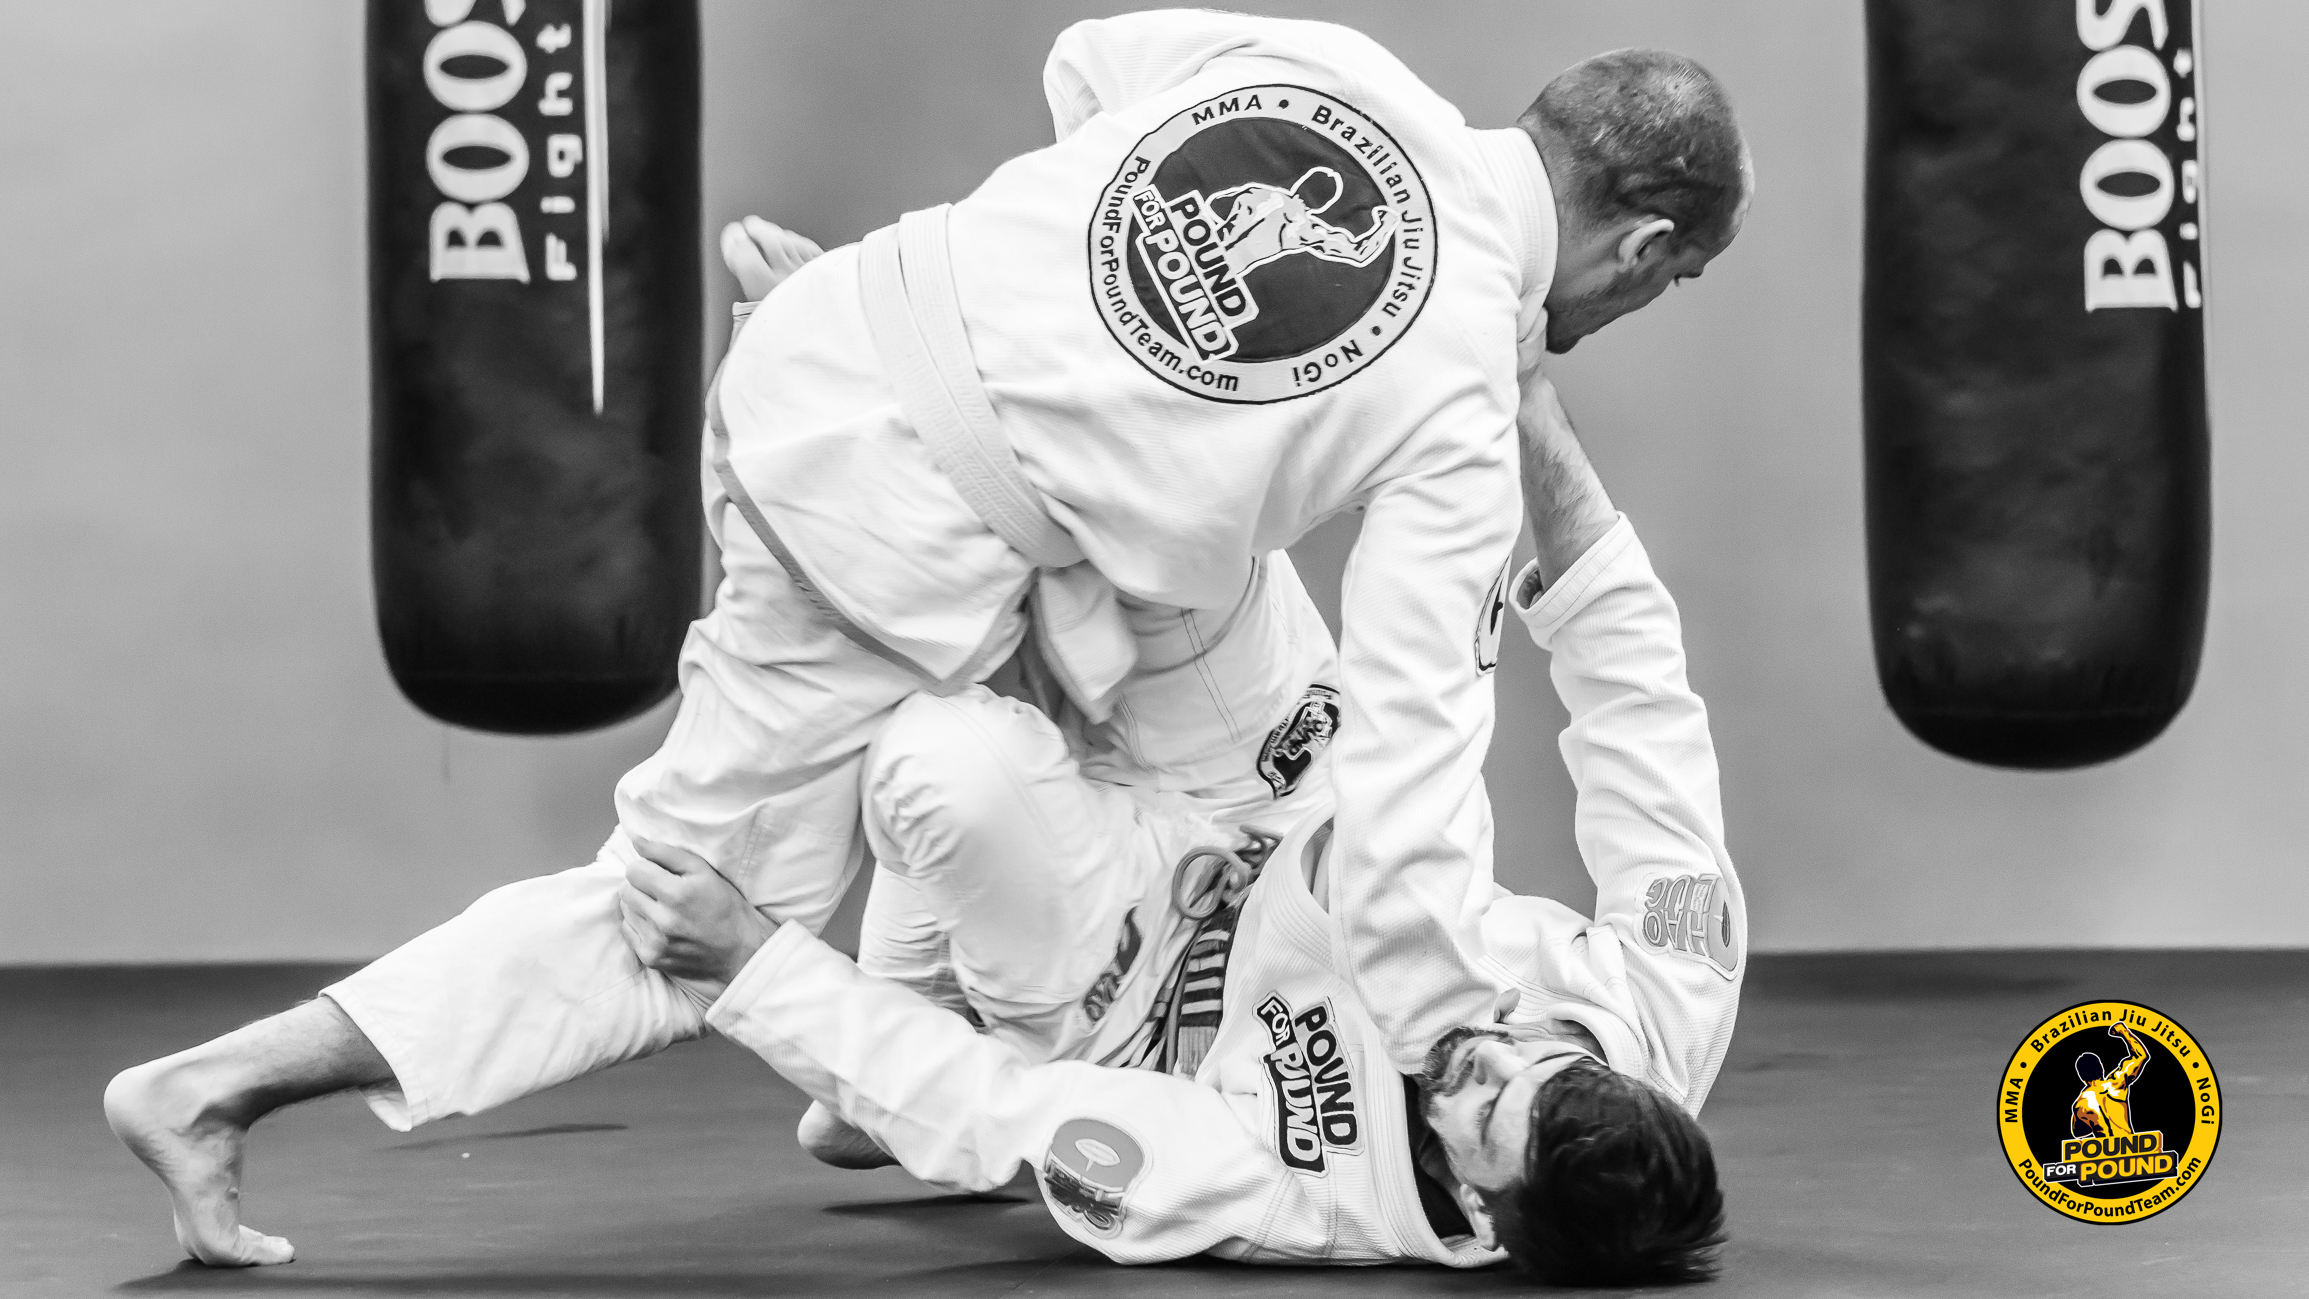 Brazilian Jiu Jitsu im Pound for Pound Gym